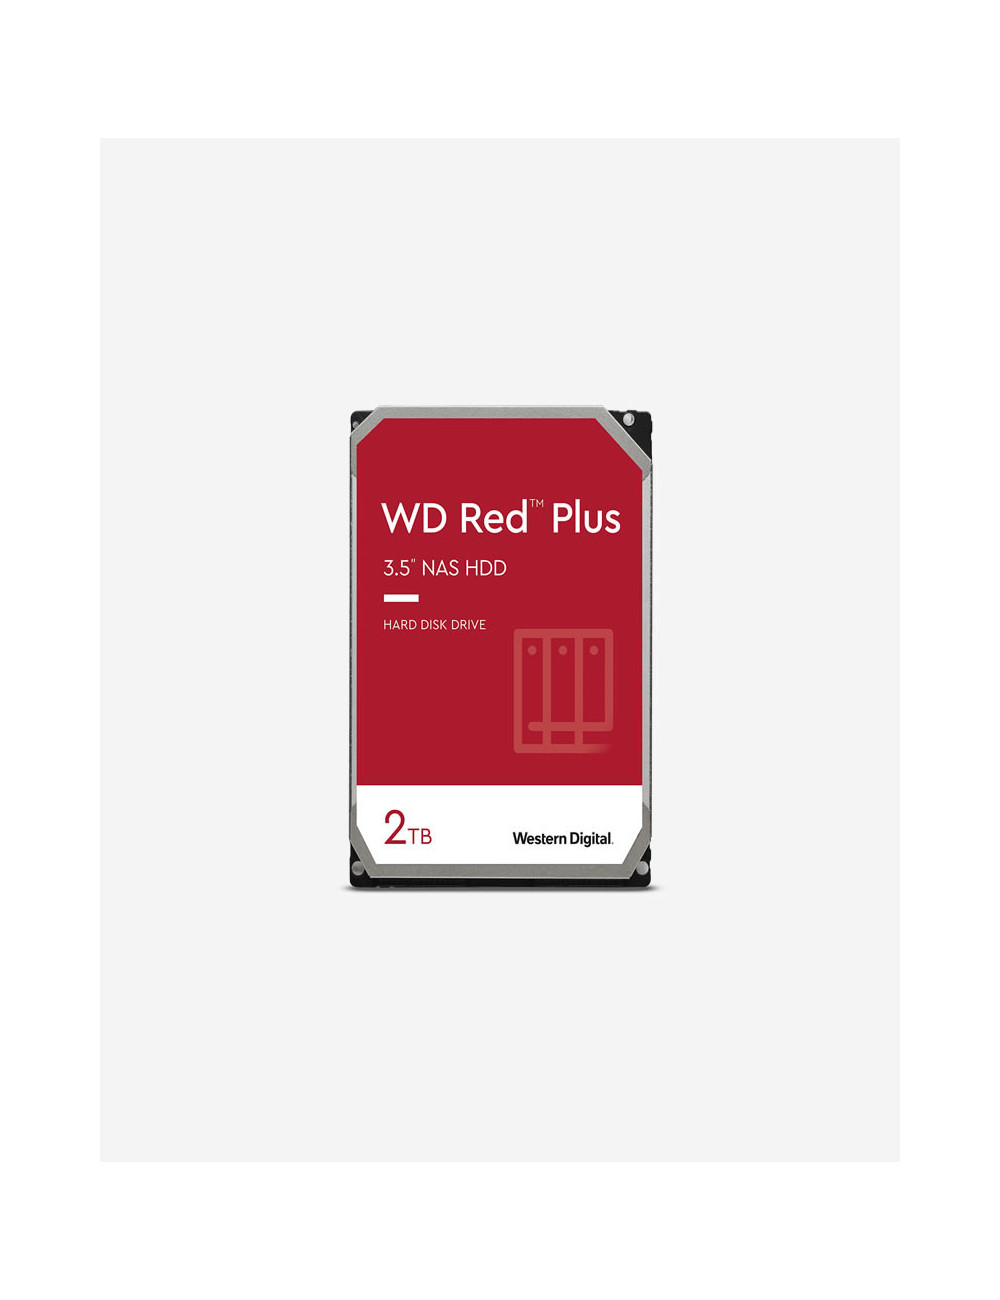 WD RED PLUS 2TB SATA drive for NAS